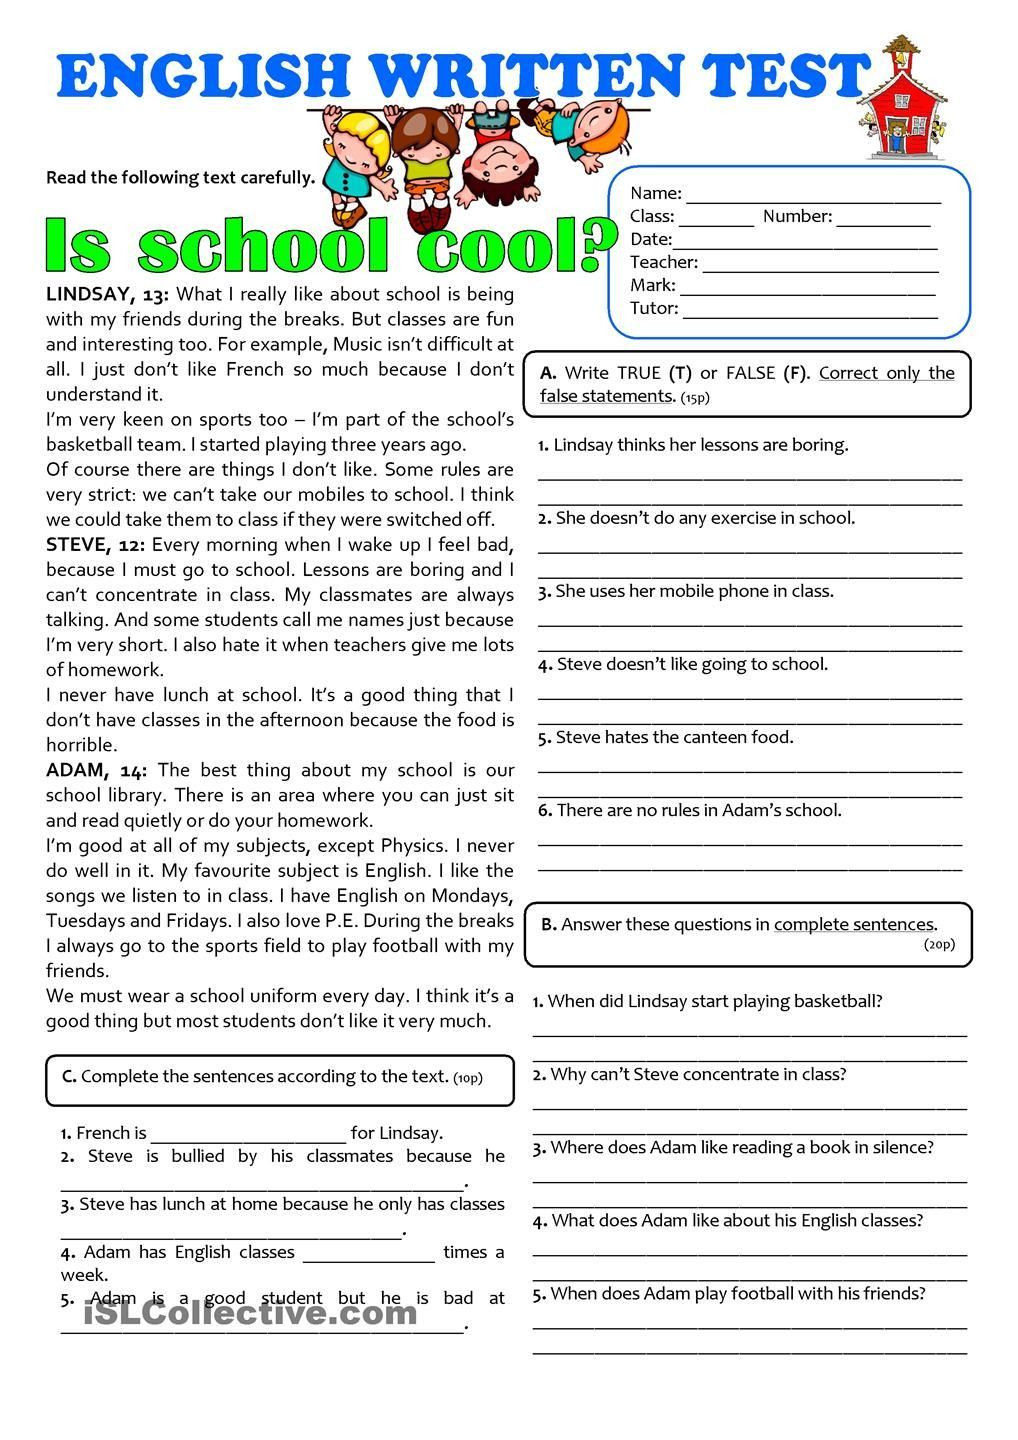 Free 7th Grade Reading Worksheets 3 7th Grade Reading Worksheets Printable In 2020